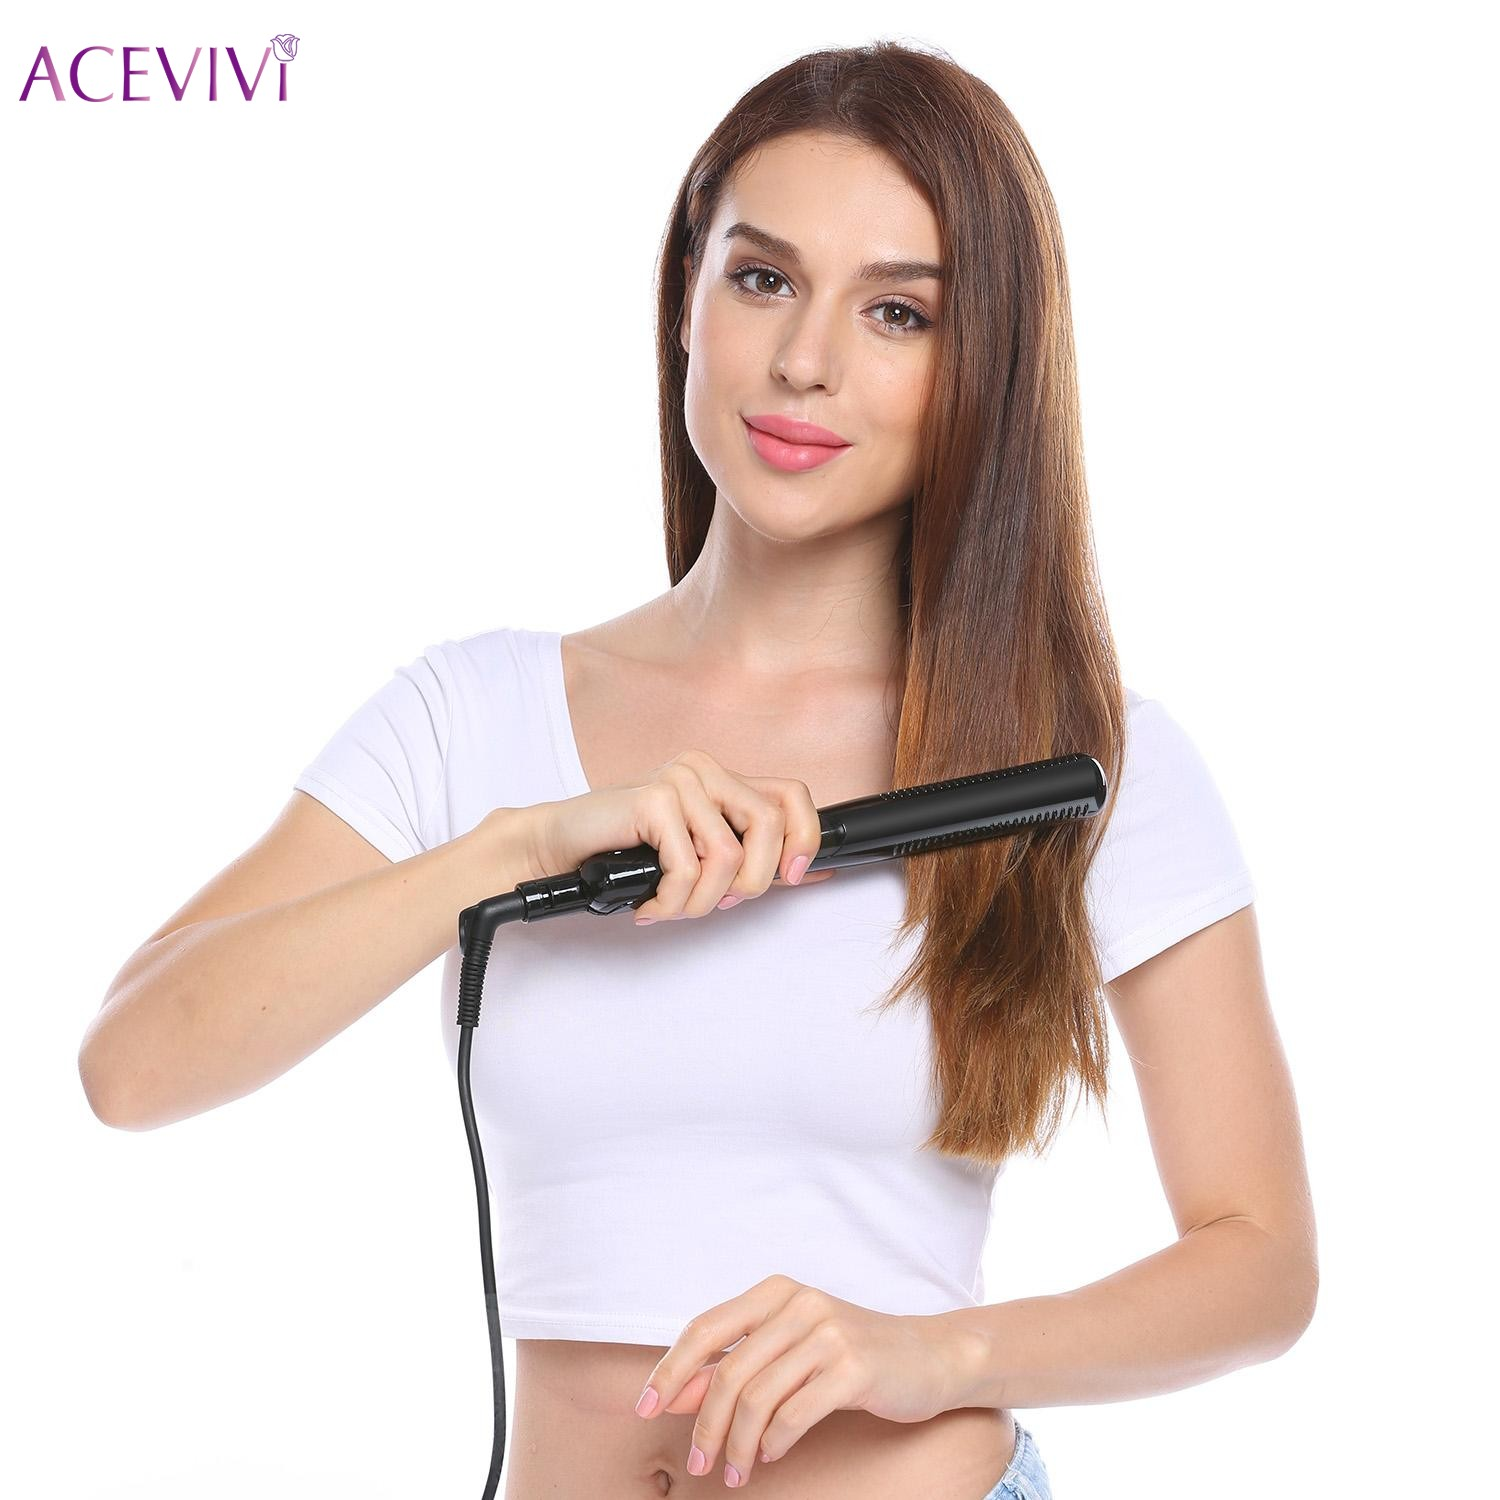 ACEVIVI MCH Heating Straightening Hair Irons Automatic Straight Hair Temperature Display Electric Fast Hair Straightener Tools<br>